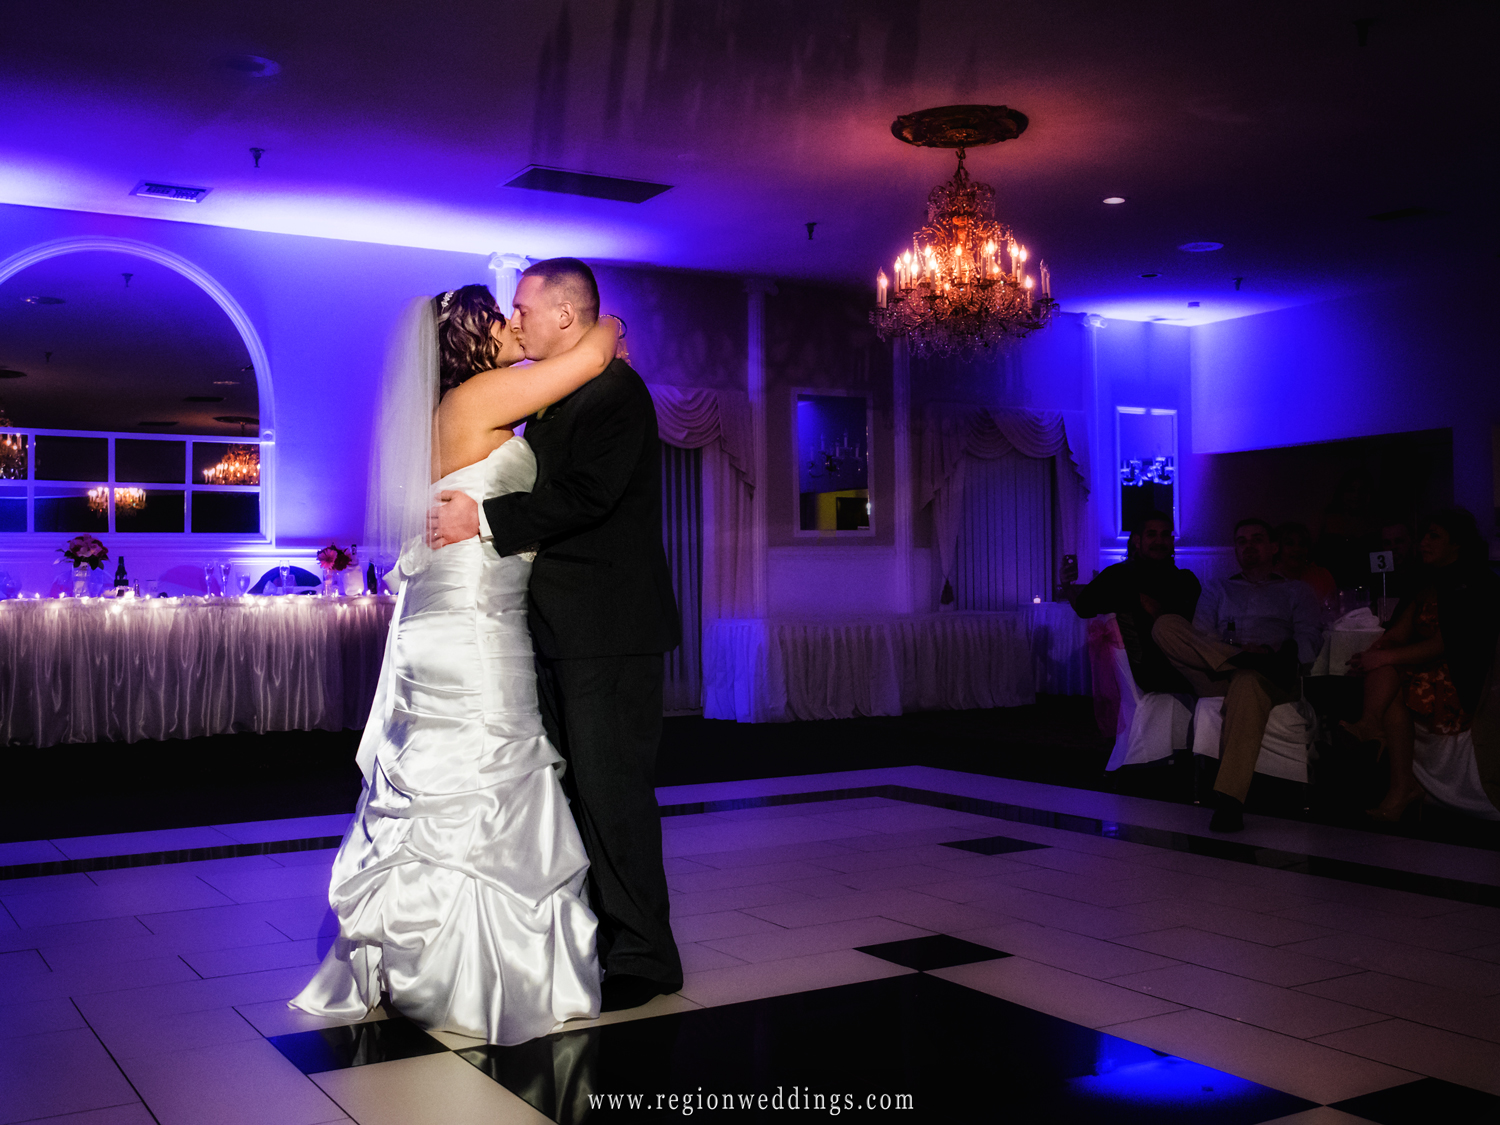 The bride and groom during their first dance at The Dream Palace in Lynwood, Illinois.